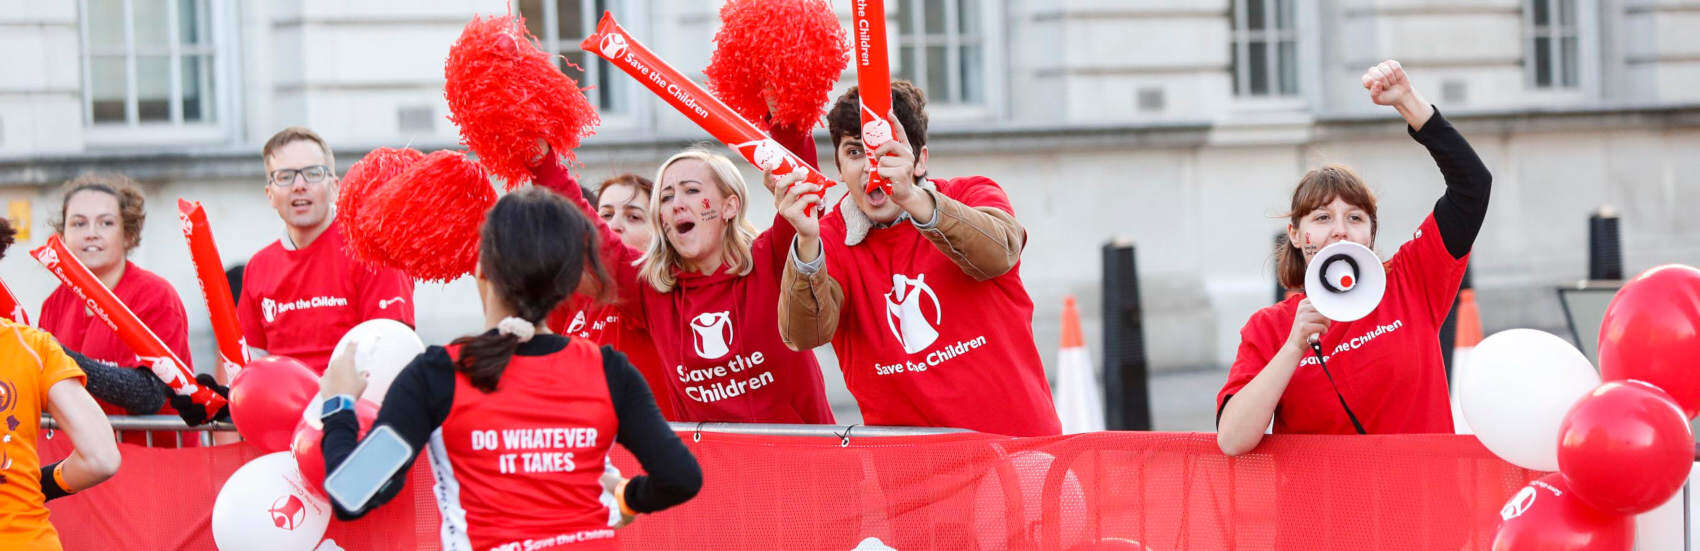 Volunteers do Whatever it Takes to Save Children, running for Save the Children in the Royal Parks Half Marathon